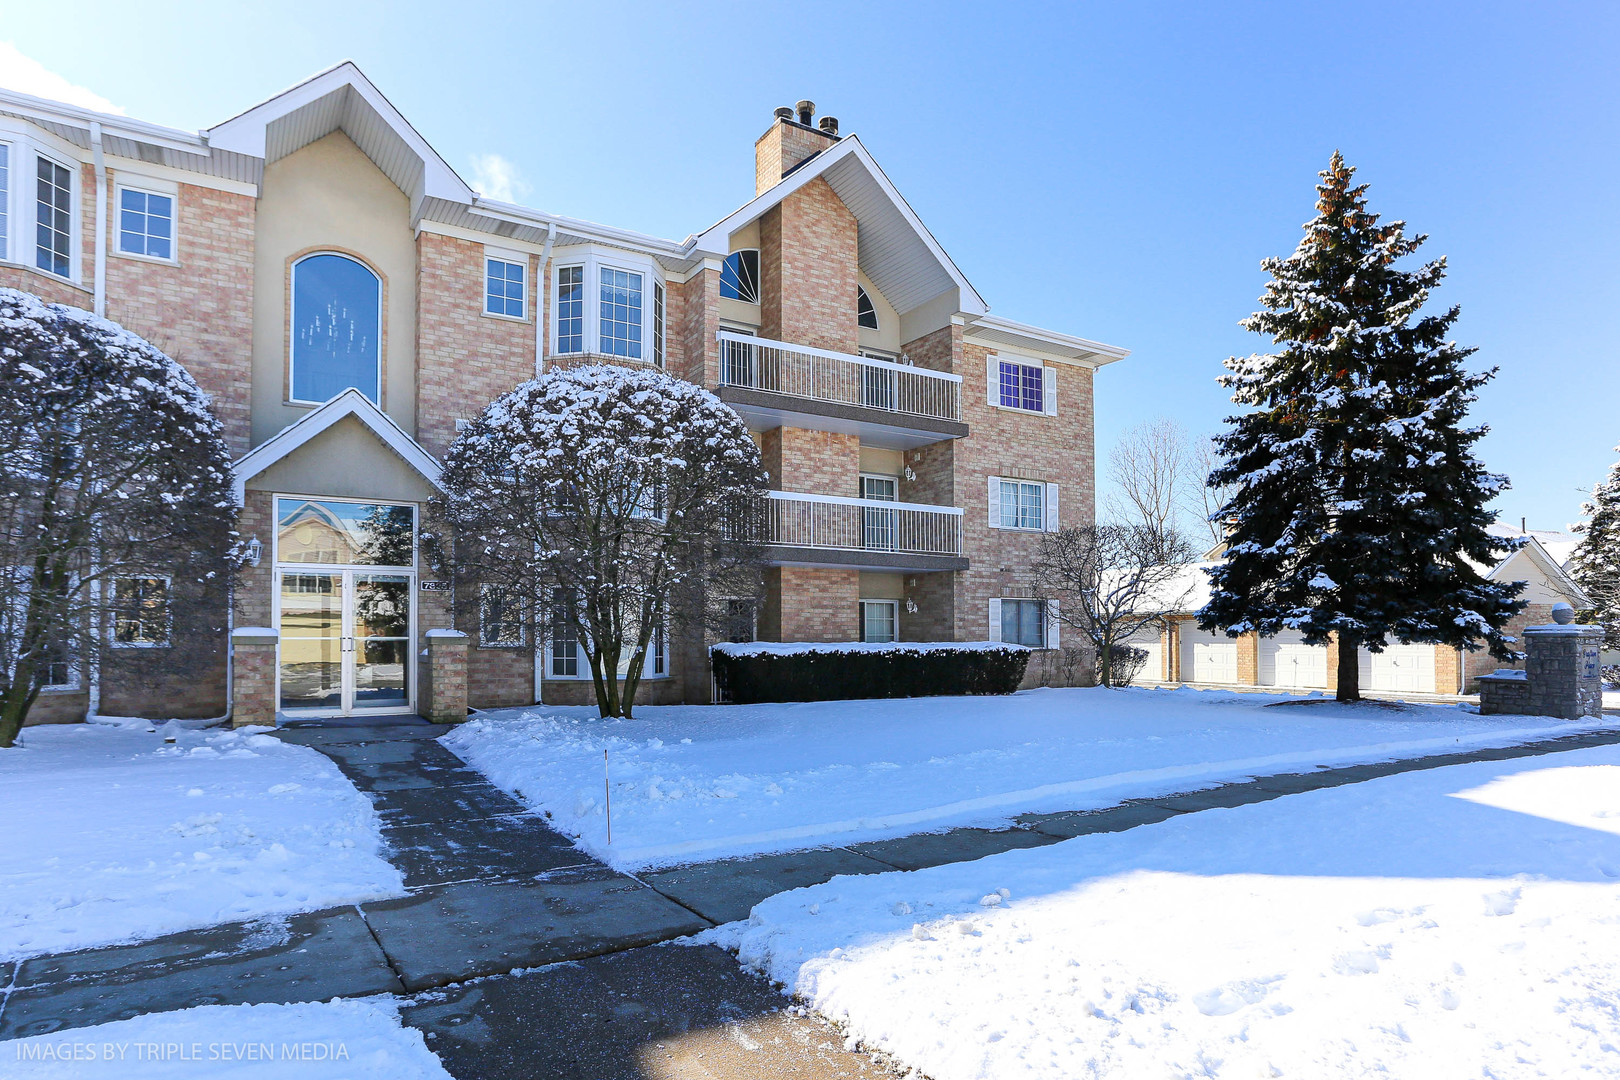 7825 Bristol Park Drive, Tinley Park in Cook County, IL 60477 Home for Sale